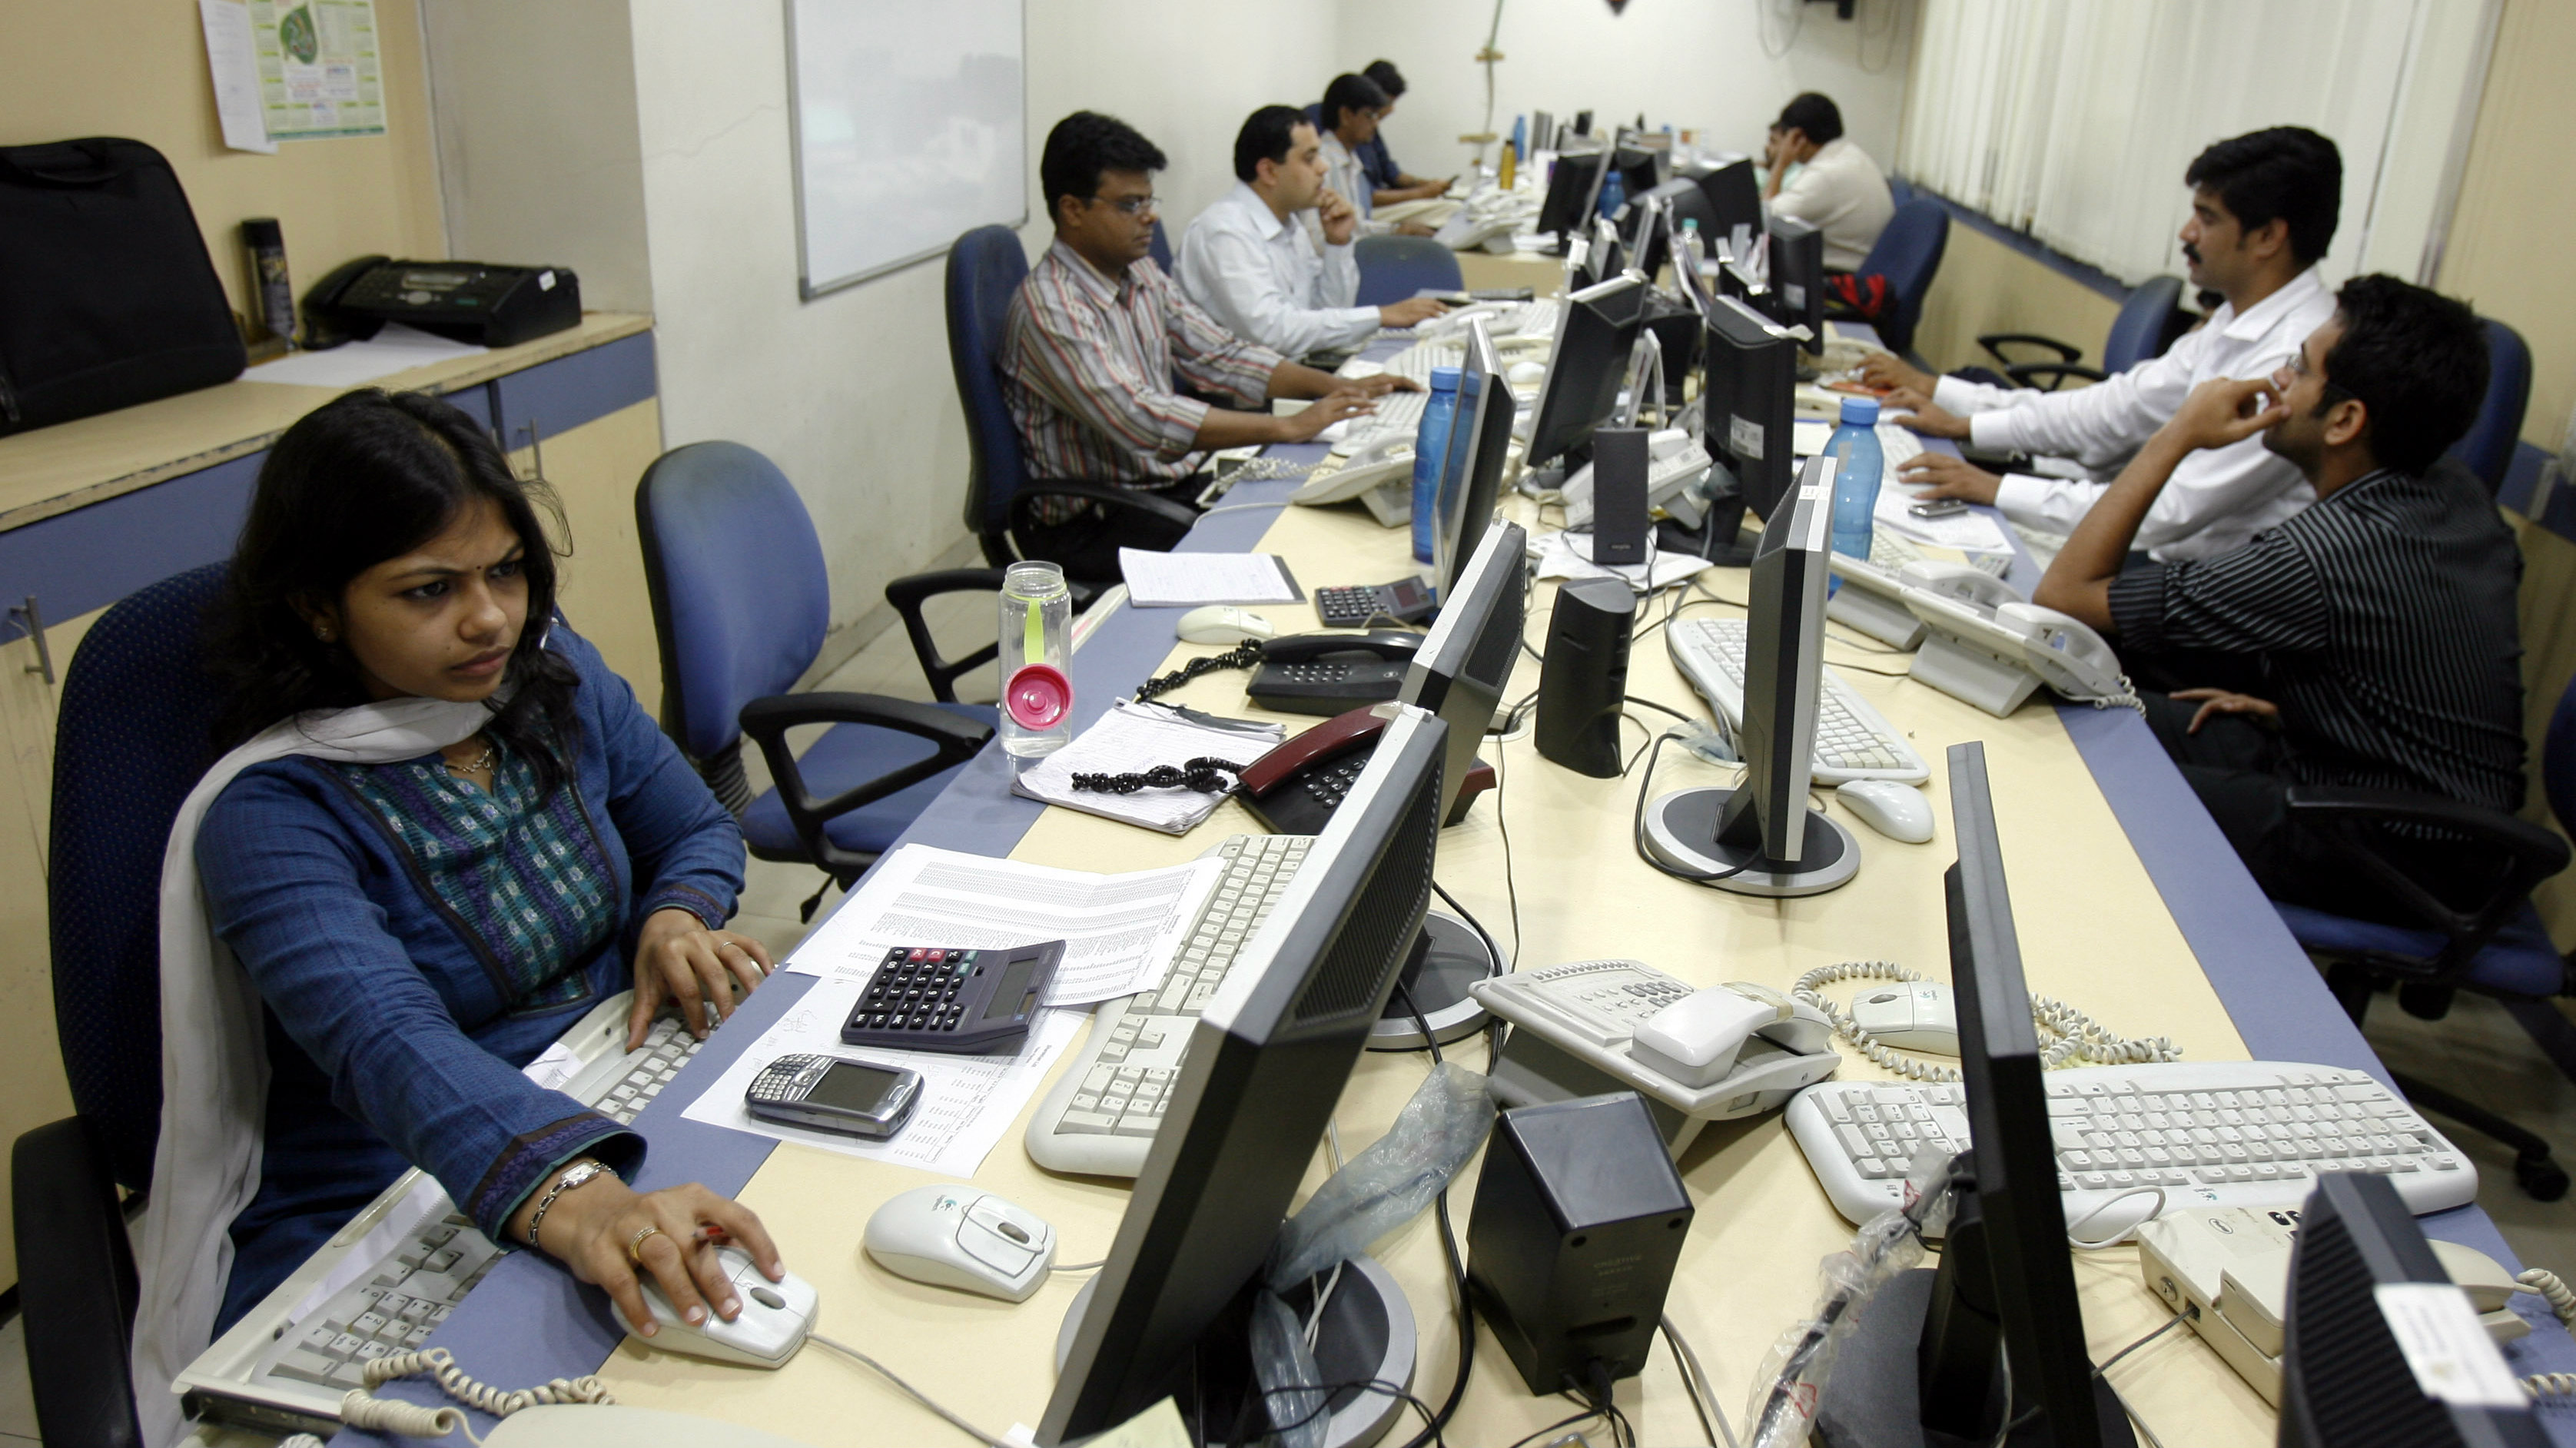 Brokers trade on their computer terminals at a stock brokerage firm in Mumbai May 4, 2009. Indian shares rose more than 6 percent on Monday afternoon, taking gains to over 50 percent from a 2009 low in early March, as strong risk appetite on a brighter outlook for the global economy lifted markets across Asia.